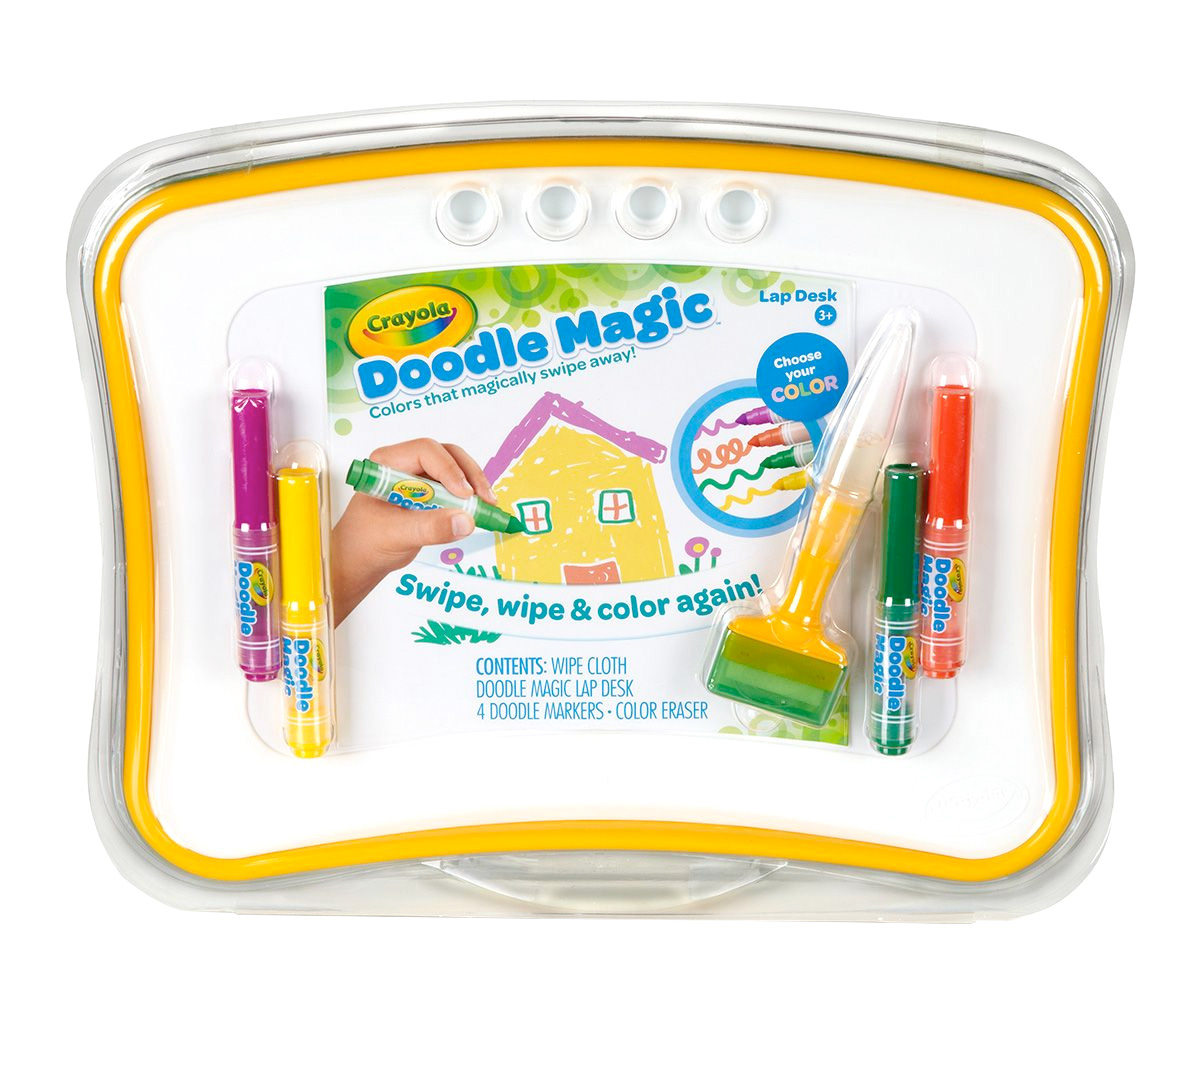 Download Doodle Magic Lap Desk & Magic Drawing Board for Kids | Crayola.com | Crayola